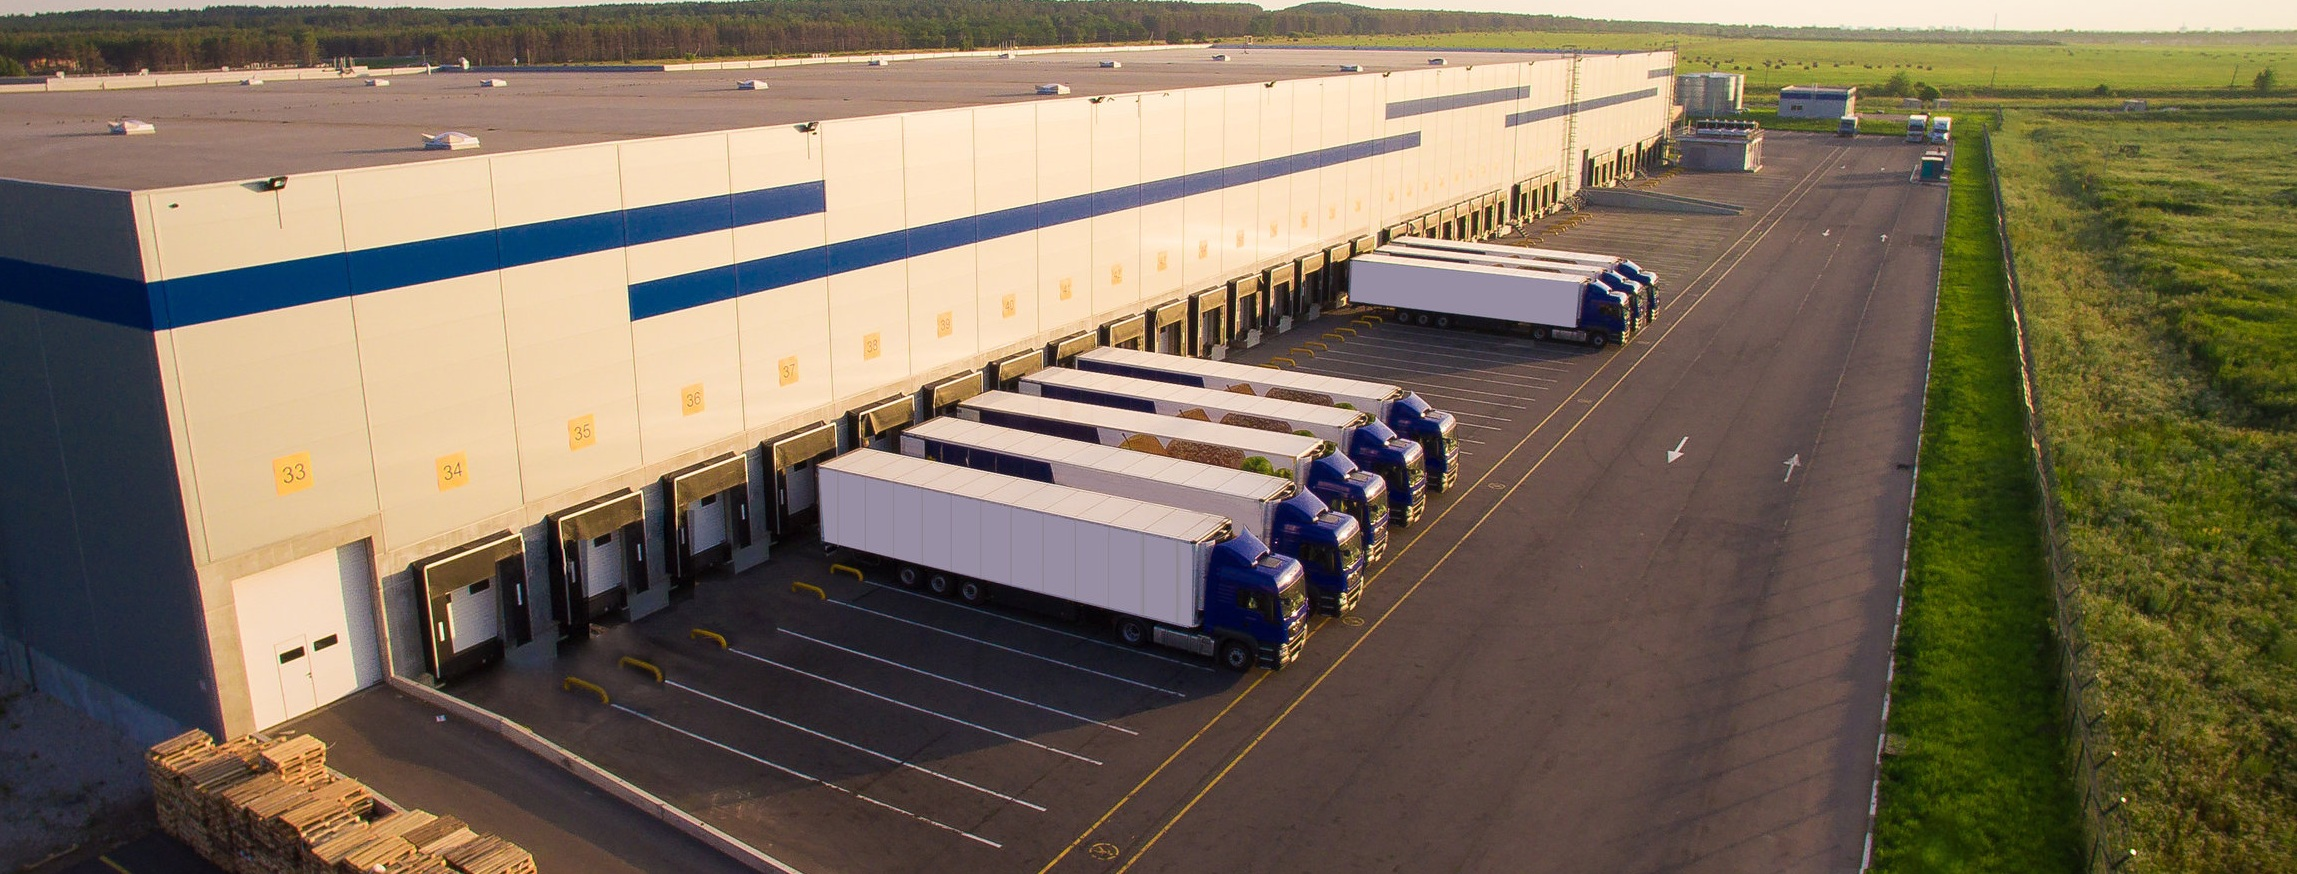 SMARTDOCK™ - Real-time insight into the current state of a loading dock, measures efficiency, and creates visual records of key activity. Facilities can quantify the impact of dwell time on their business, get insights for corrective action, and make smarter decisions.